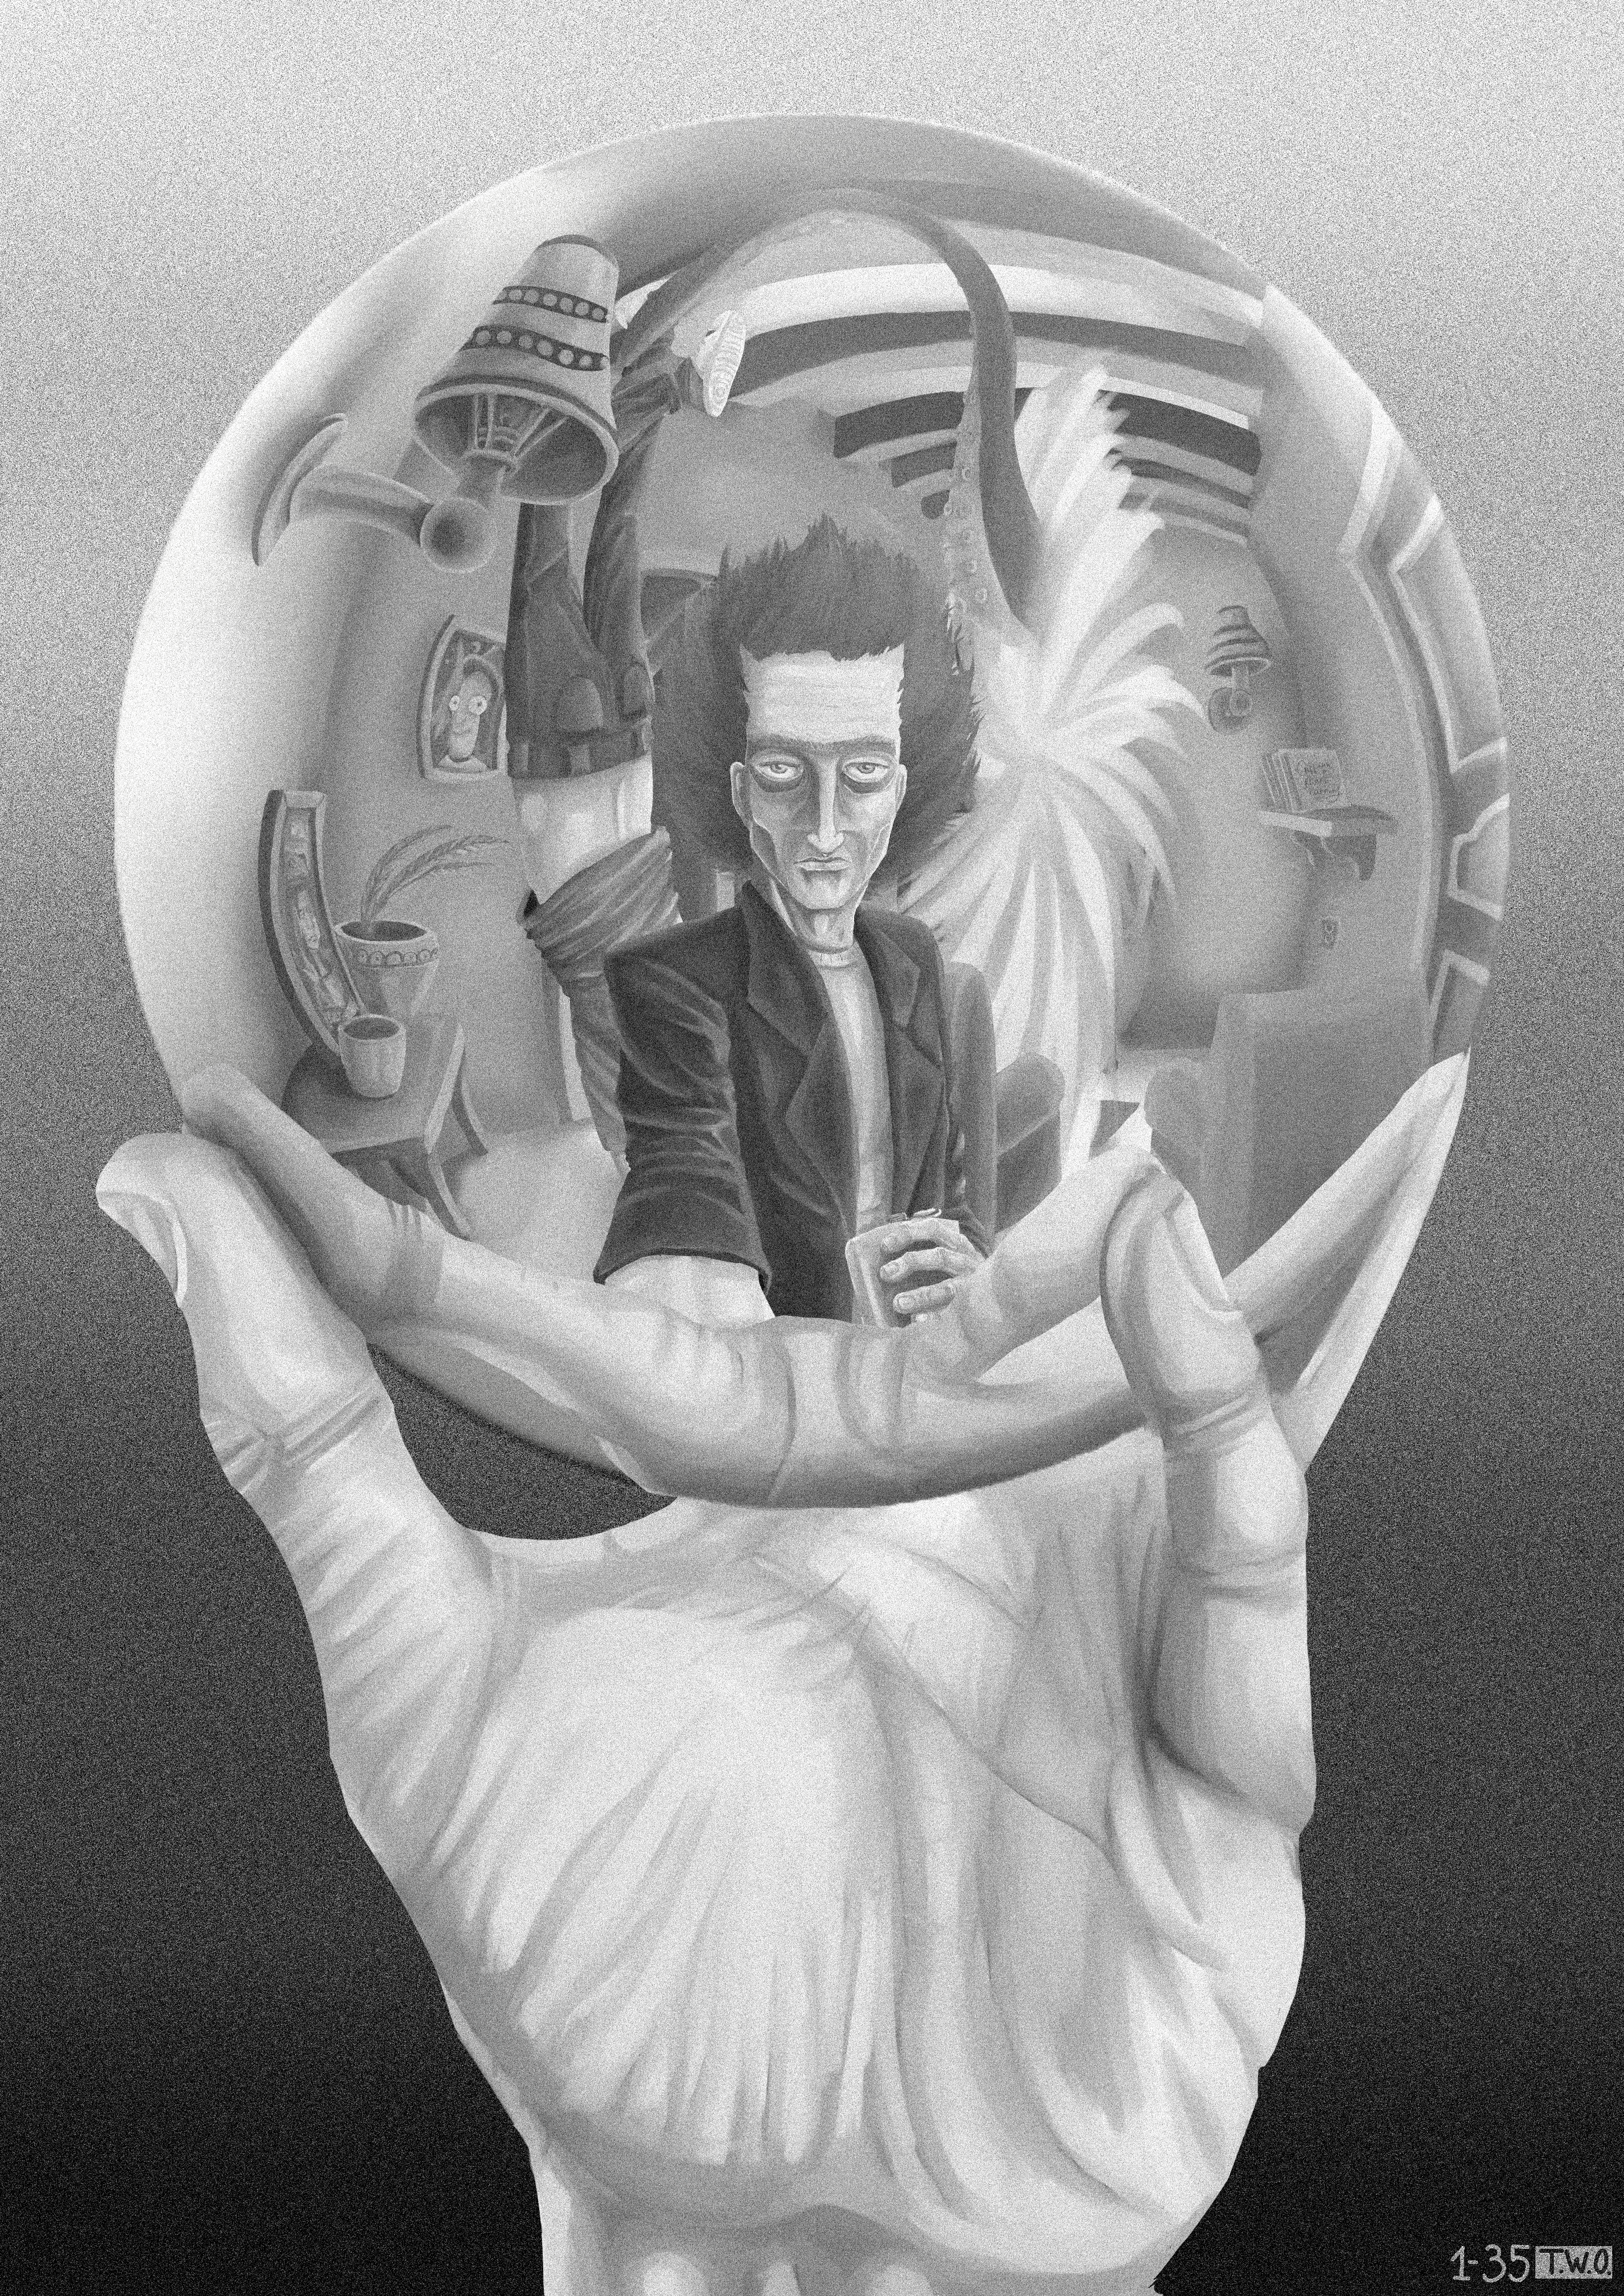 Rick's Hand with Reflecting Sphere